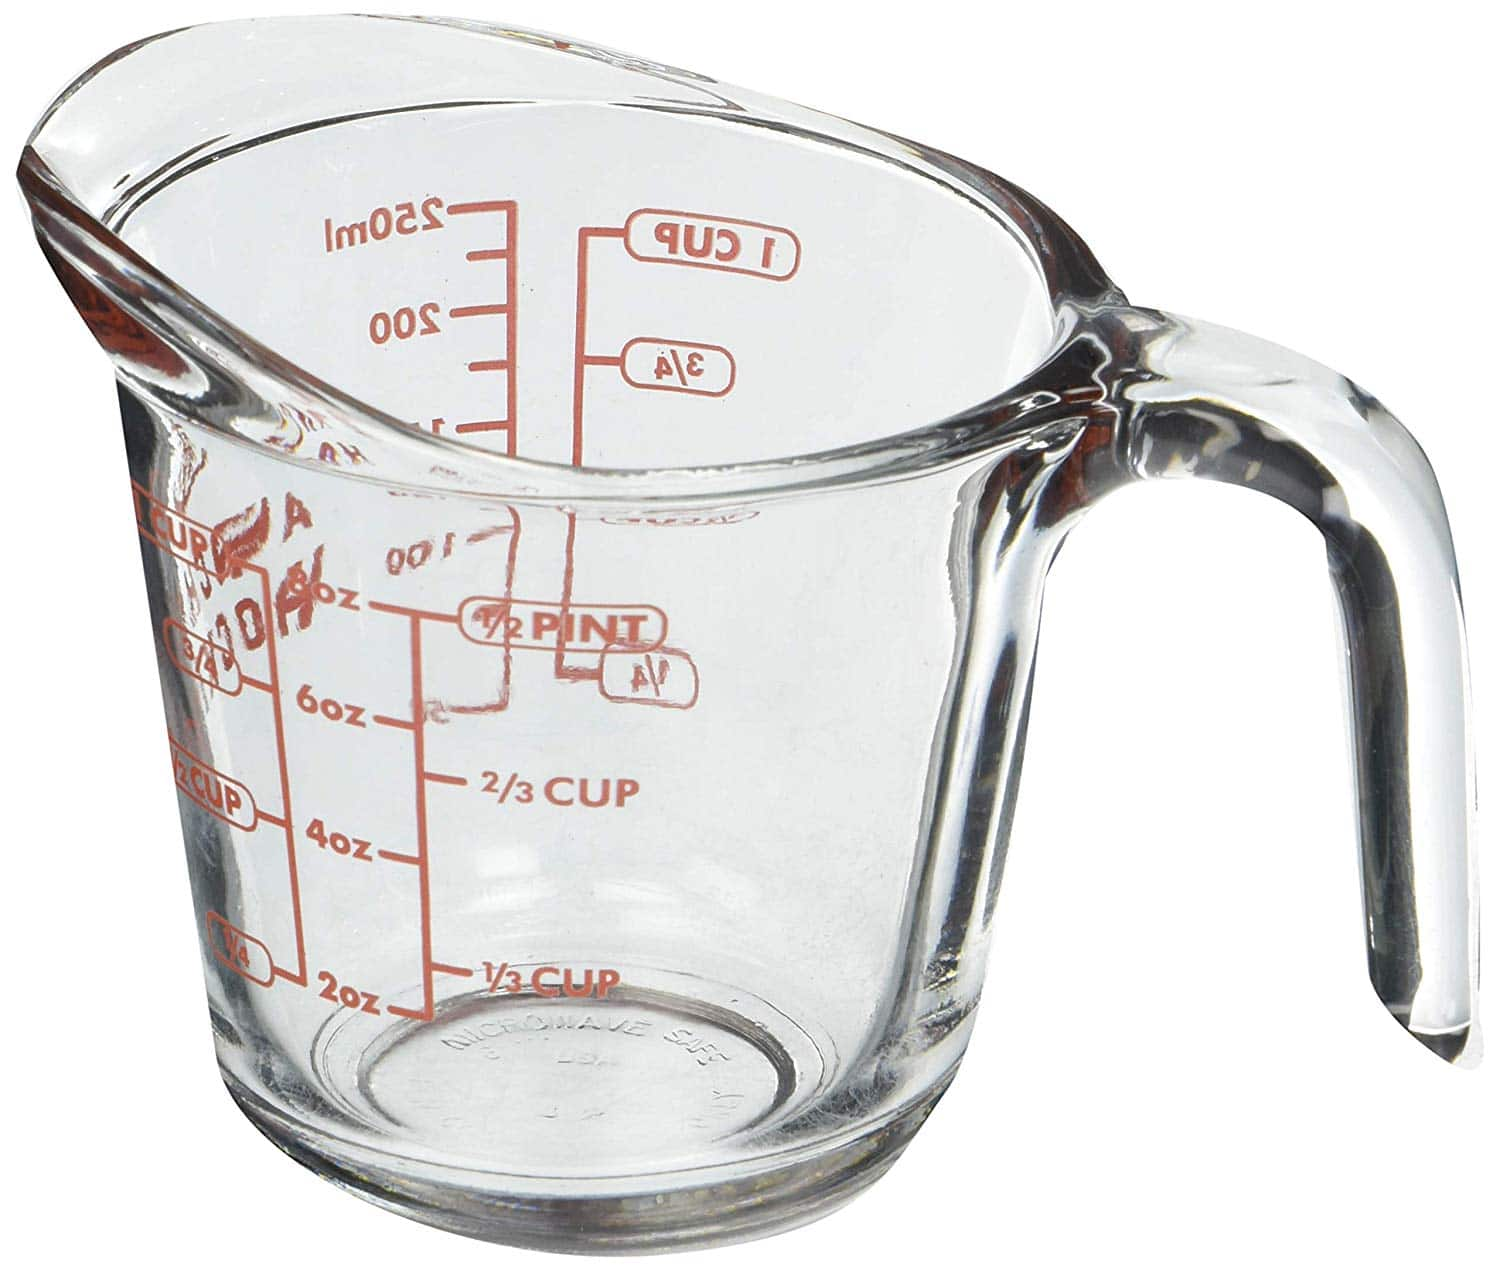 Anchor Hocking 8 Oz Measuring Cup $2.44